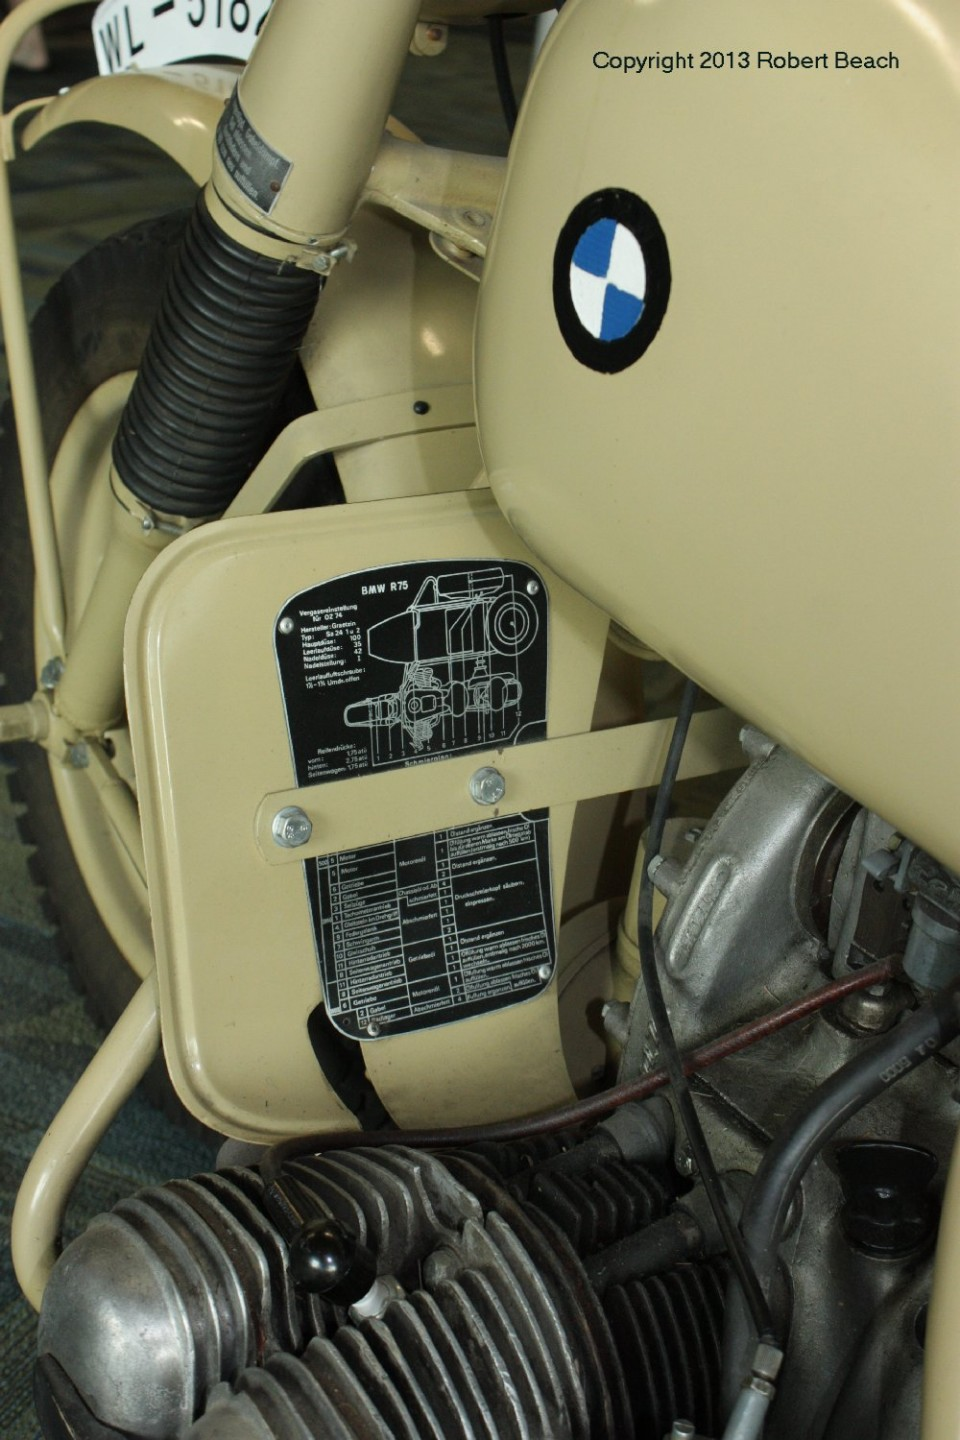 BMW_Mtrcycle_sidecar_cycle lftside foot board_frm left rear